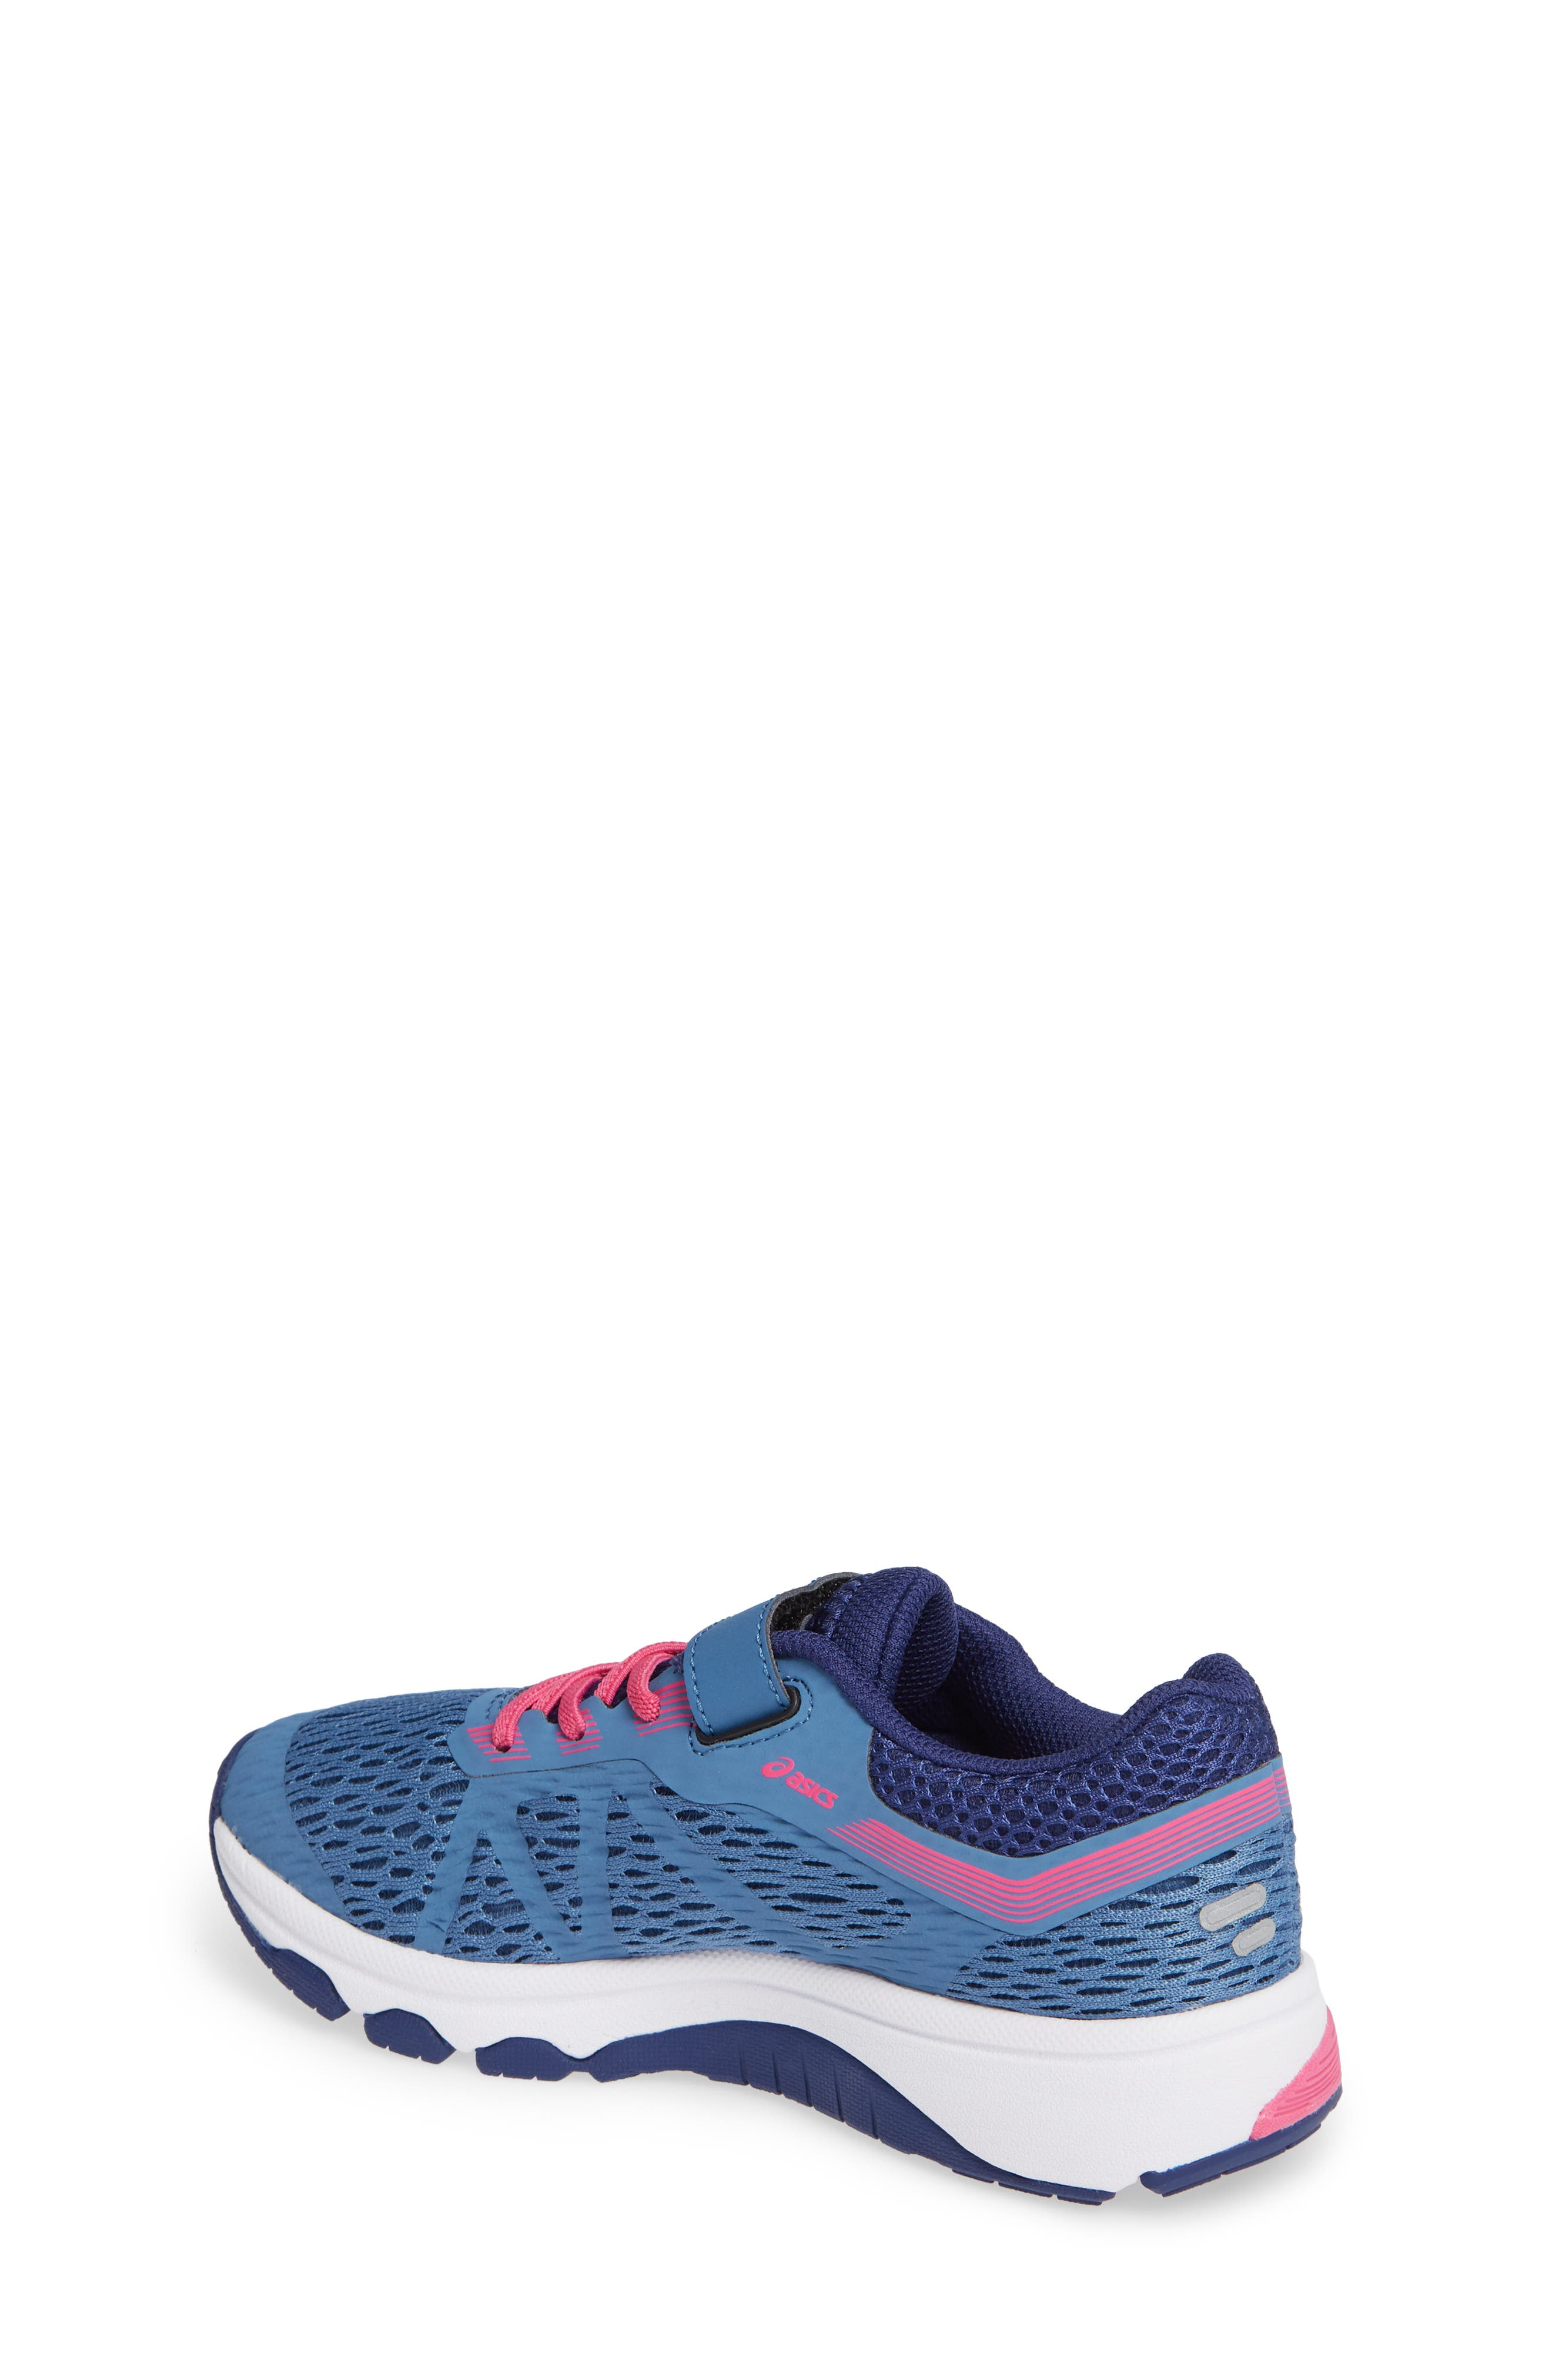 GT 1000 7 Running Shoe,                             Alternate thumbnail 2, color,                             AZURE/ FUCHSIA PURPLE